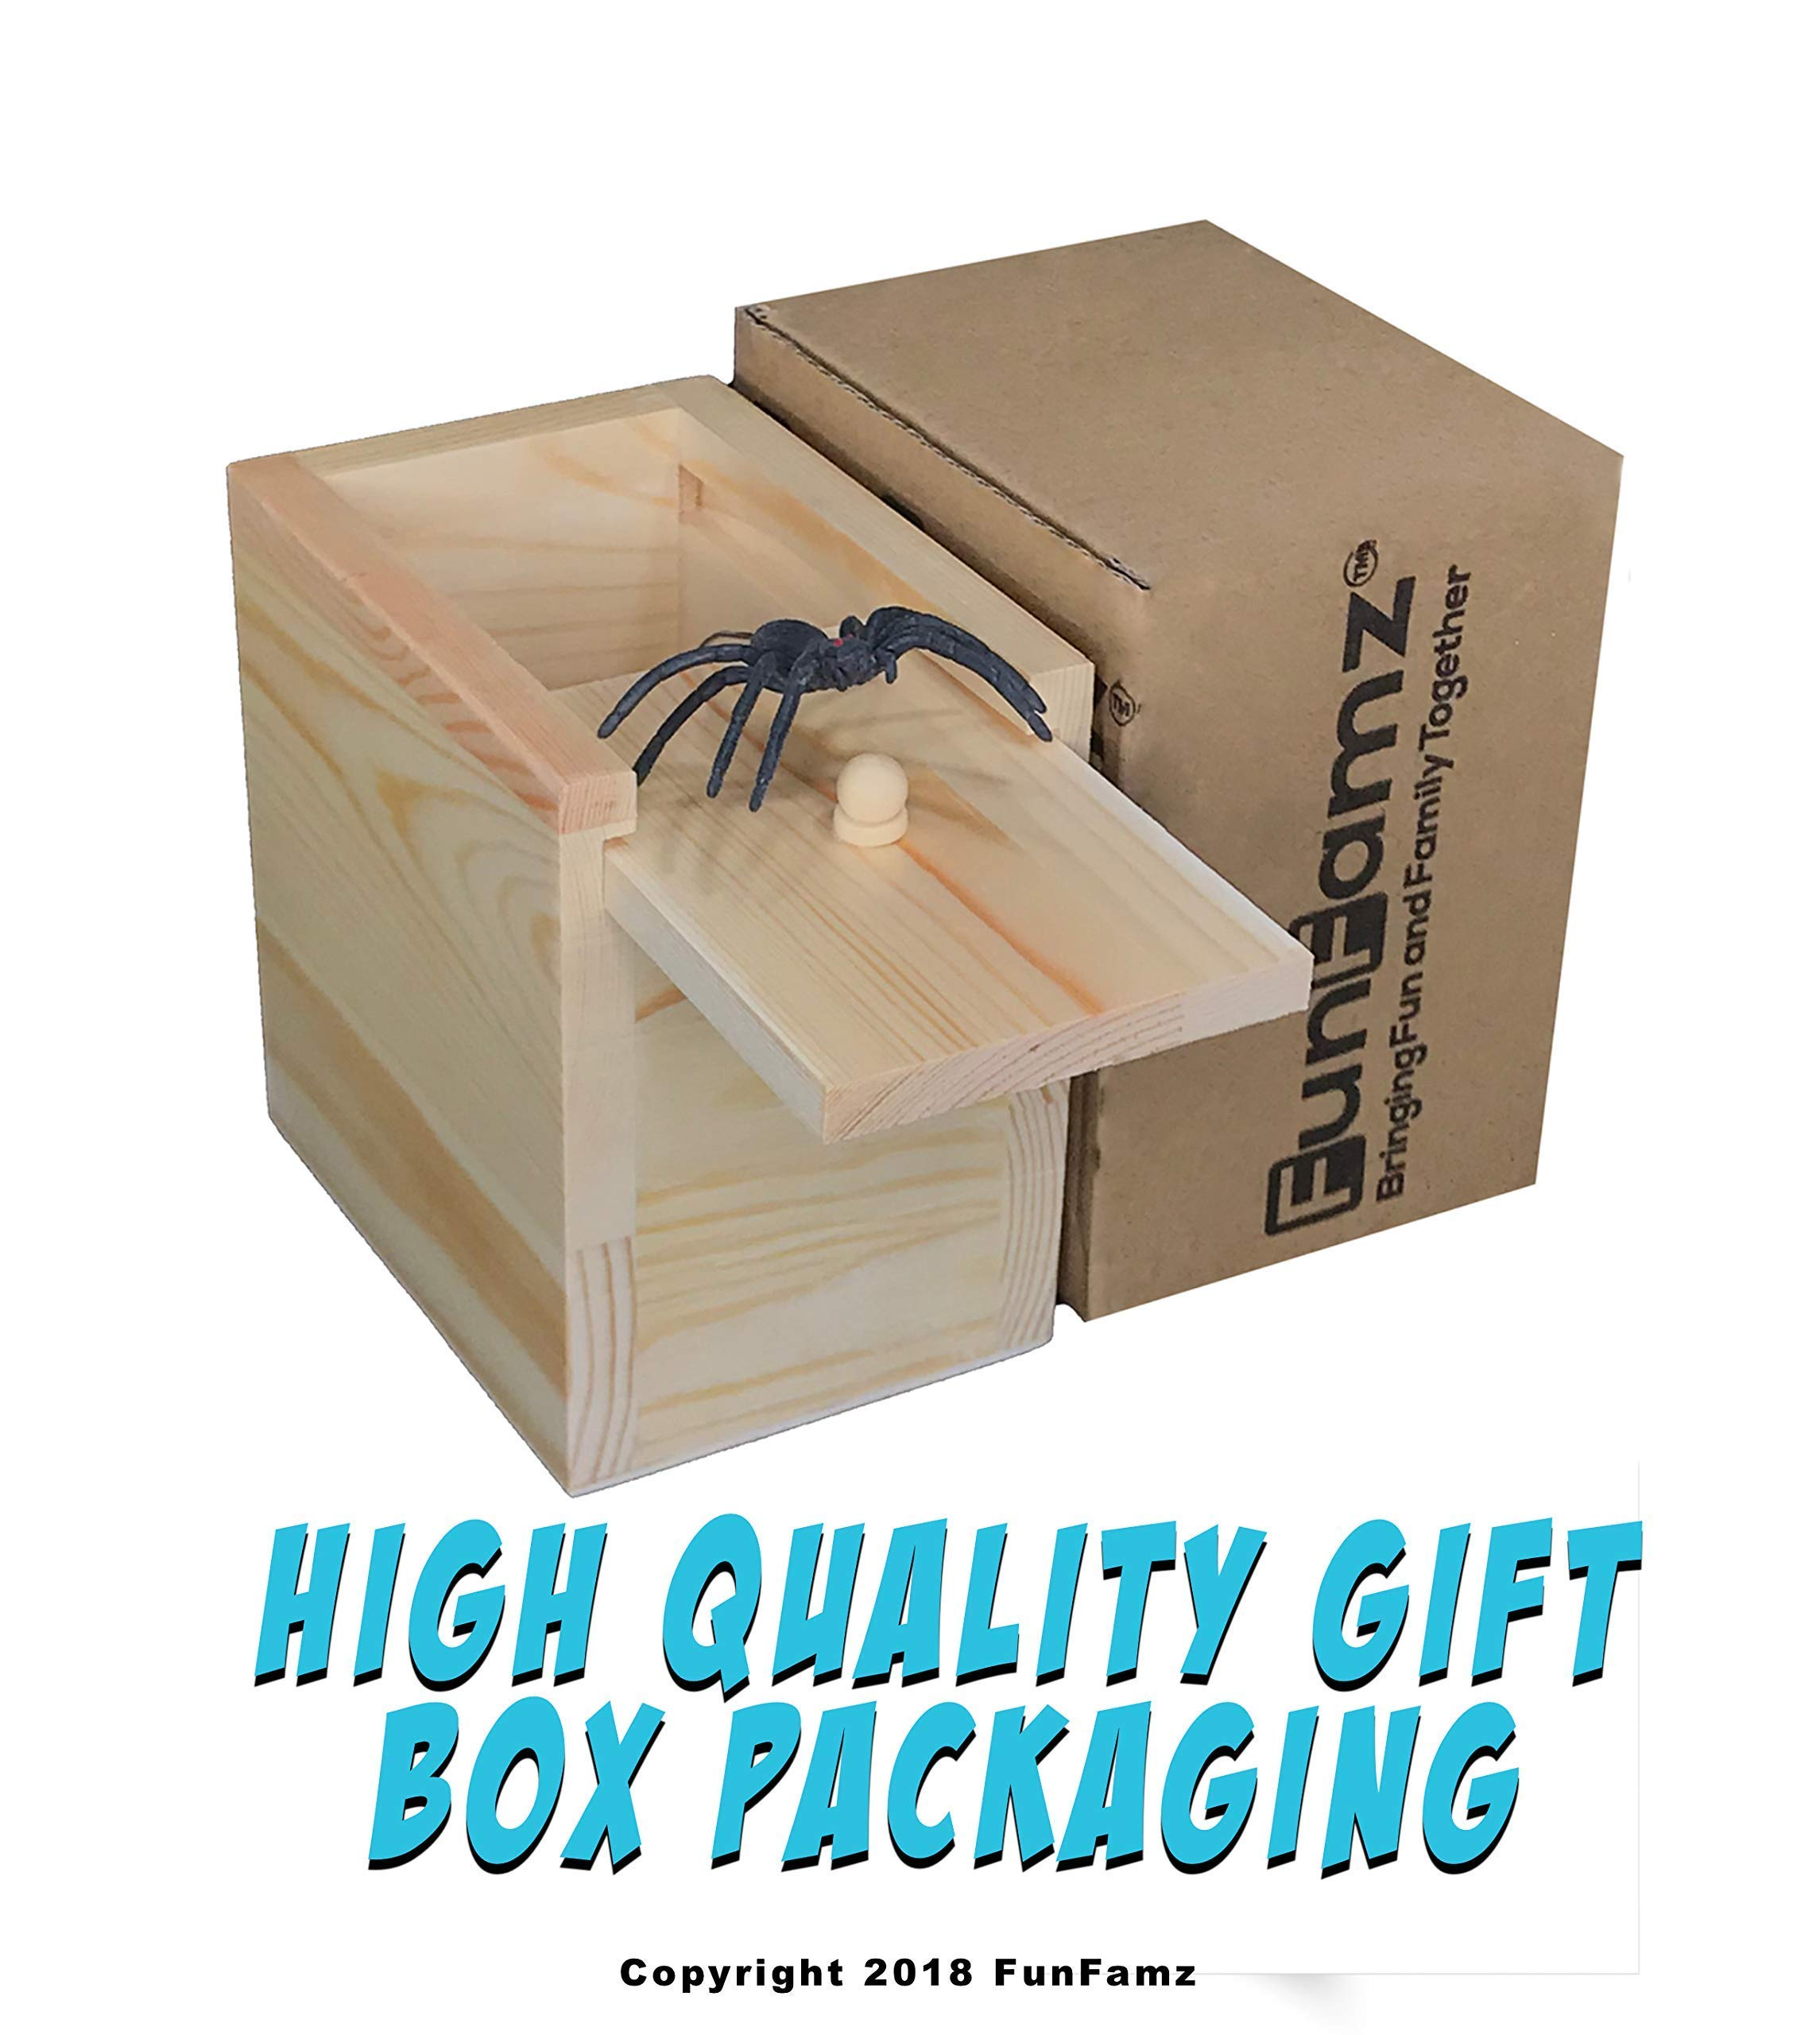 The Original Spider Prank Box- Hilarious Wooden Box Toy Prank, Funny Money Gift Box Surprise Toy, and Christmas Gag Gift Prank for Boys, Girls, Adults by FunFamz by FunFamz (Image #5)